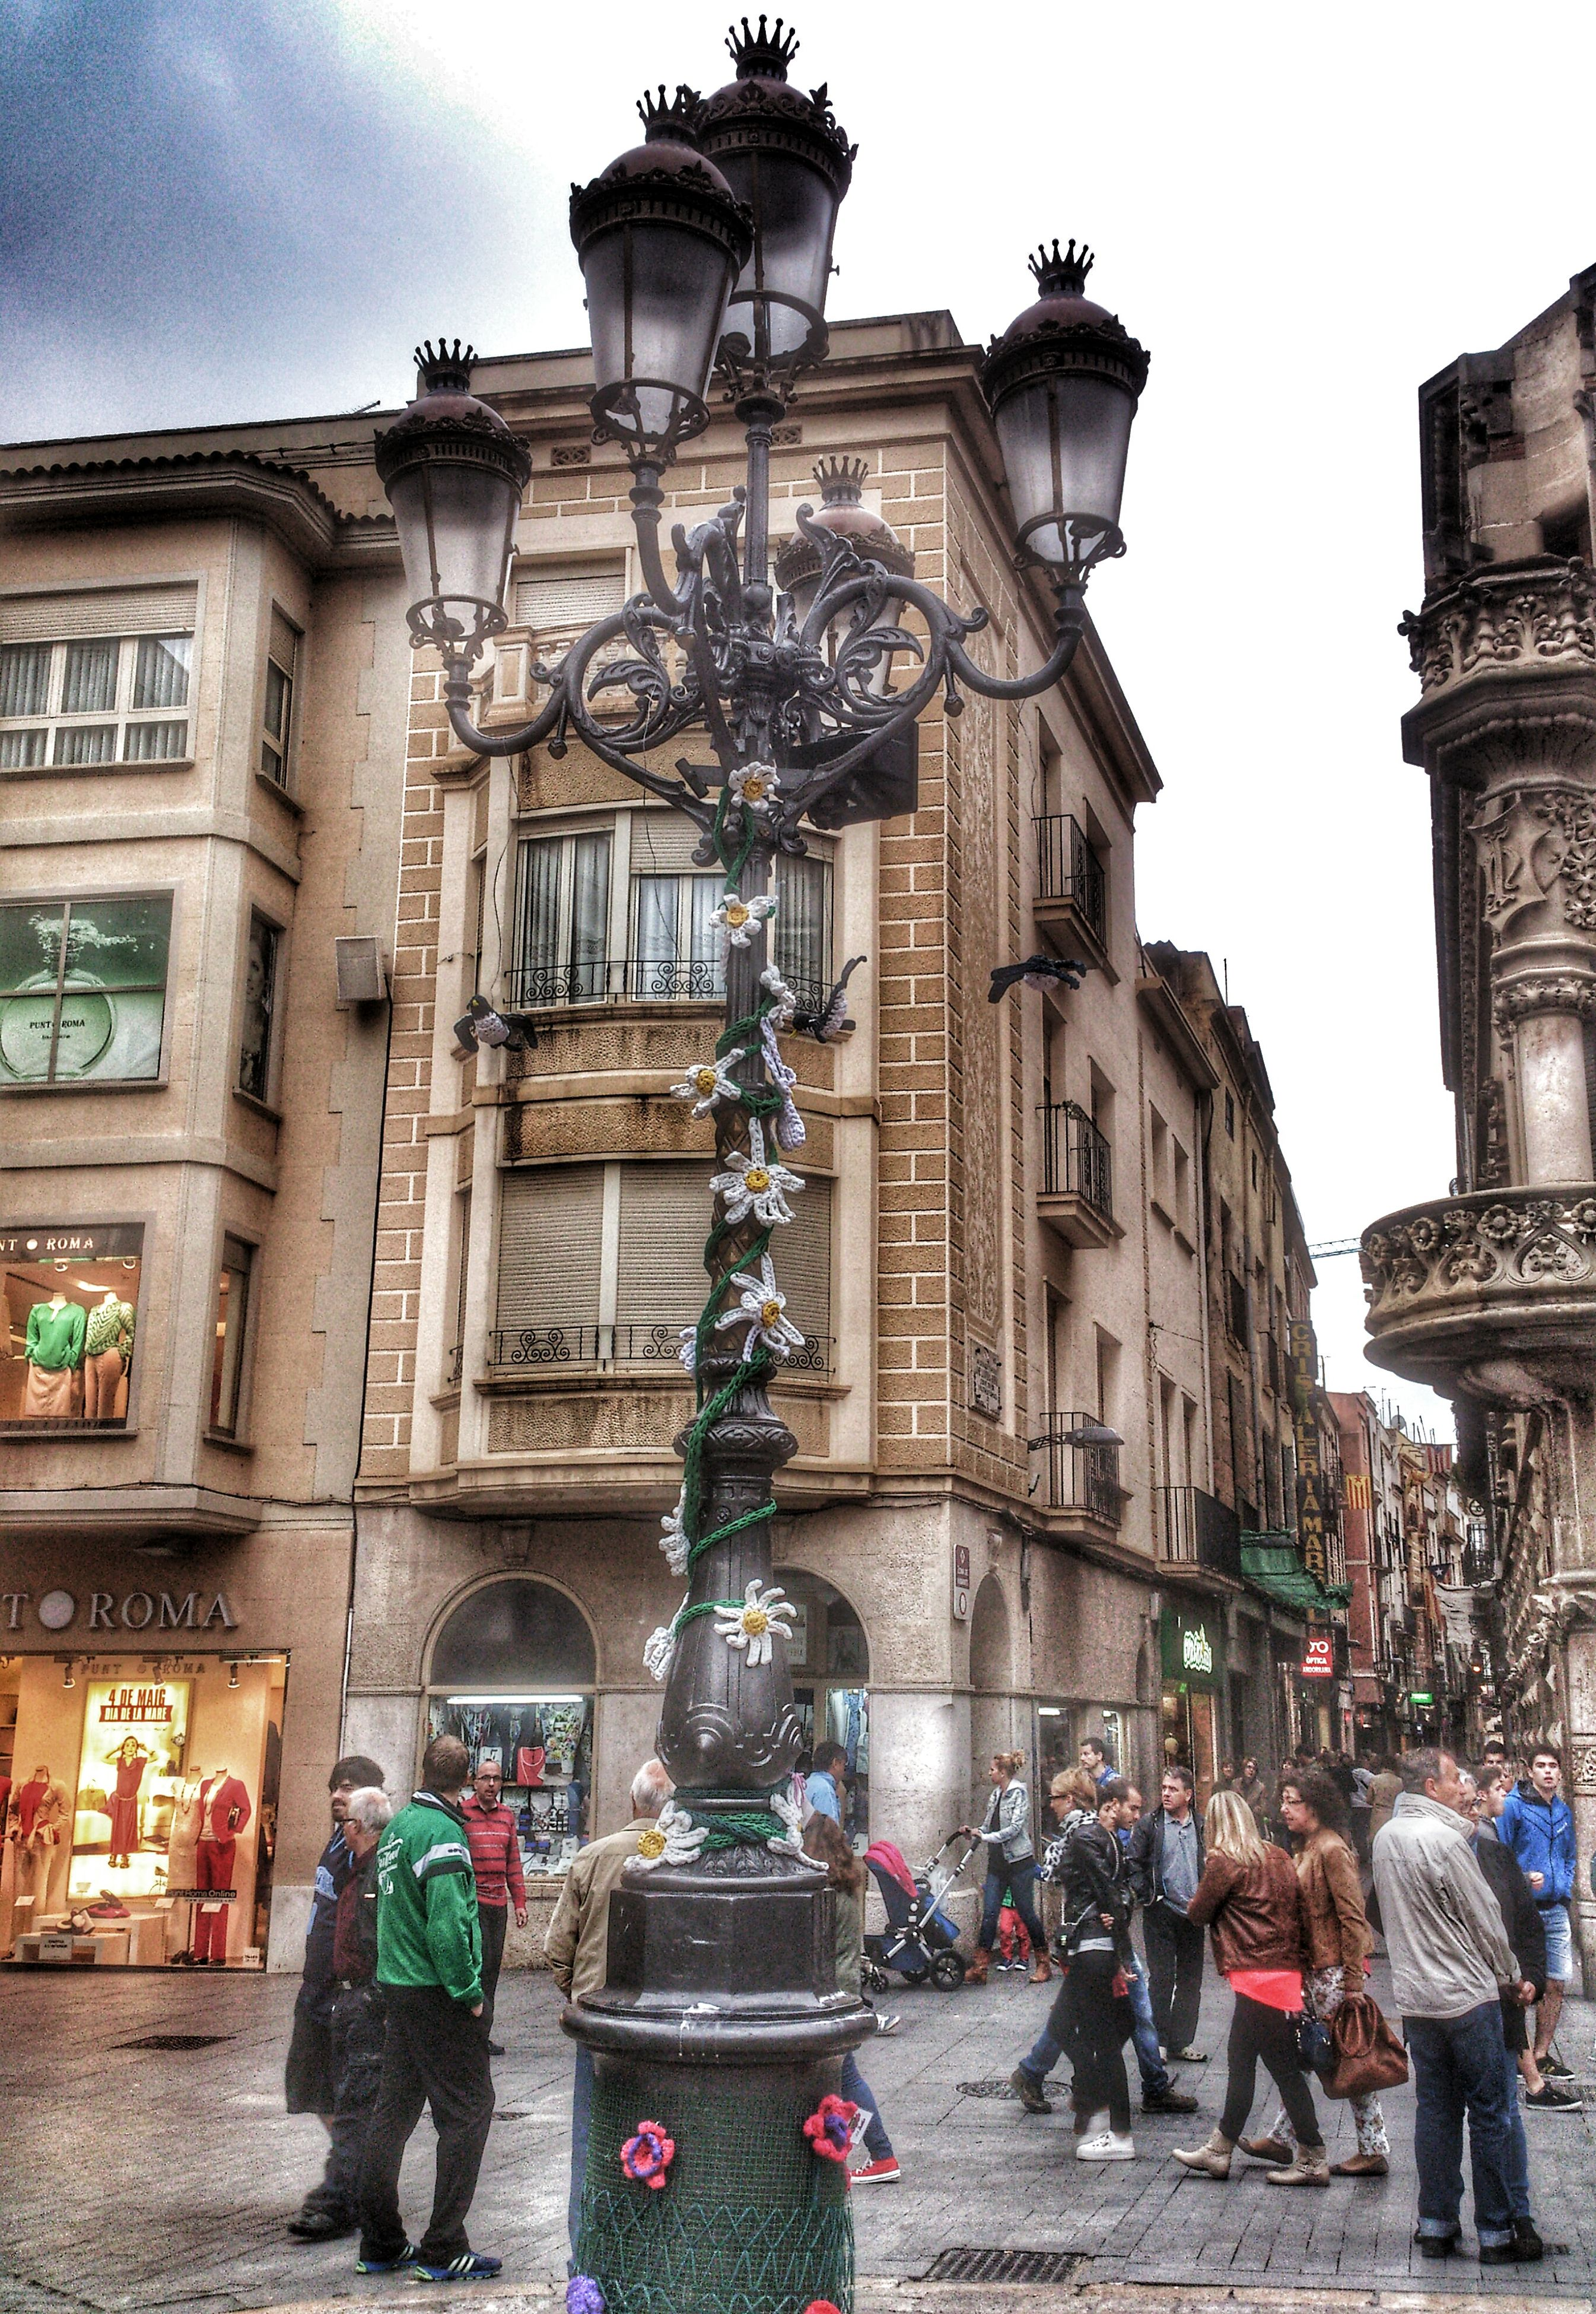 architecture, built structure, building exterior, large group of people, men, person, lifestyles, leisure activity, city, human representation, city life, statue, mixed age range, walking, street, art and craft, tourist, sculpture, sky